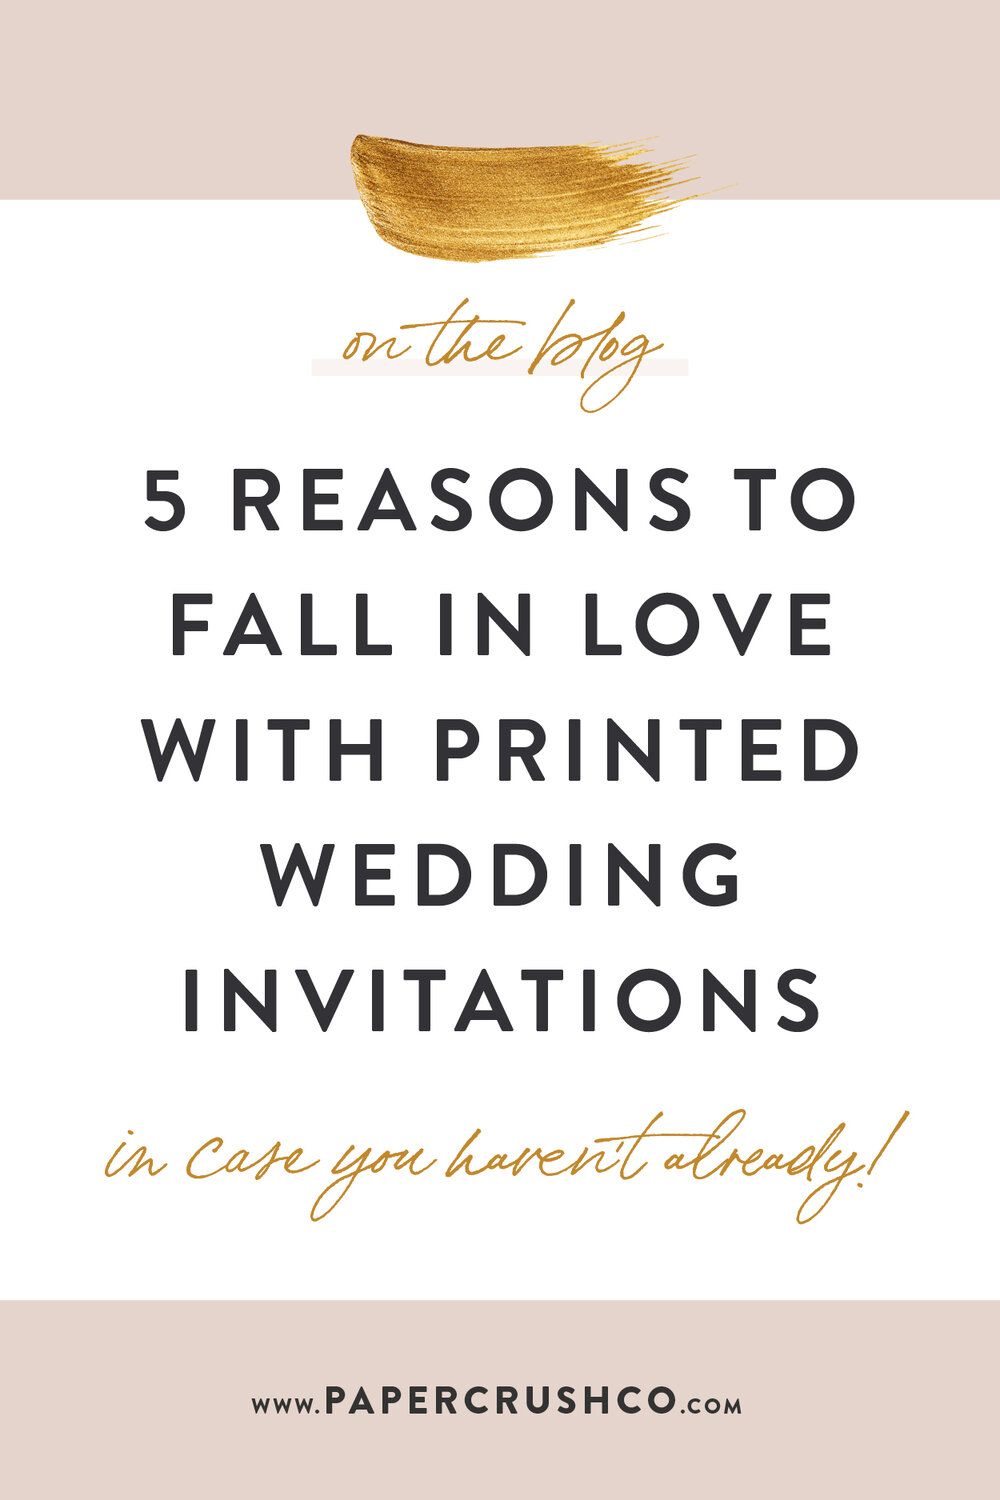 xWhen it comes to the wedding details we love the most, printed stationery definitely takes the cake for us! What's not to love about opening up an elegant invitation in the mail? Here are 5 reasons to fall in love with print (in case you haven't already)!